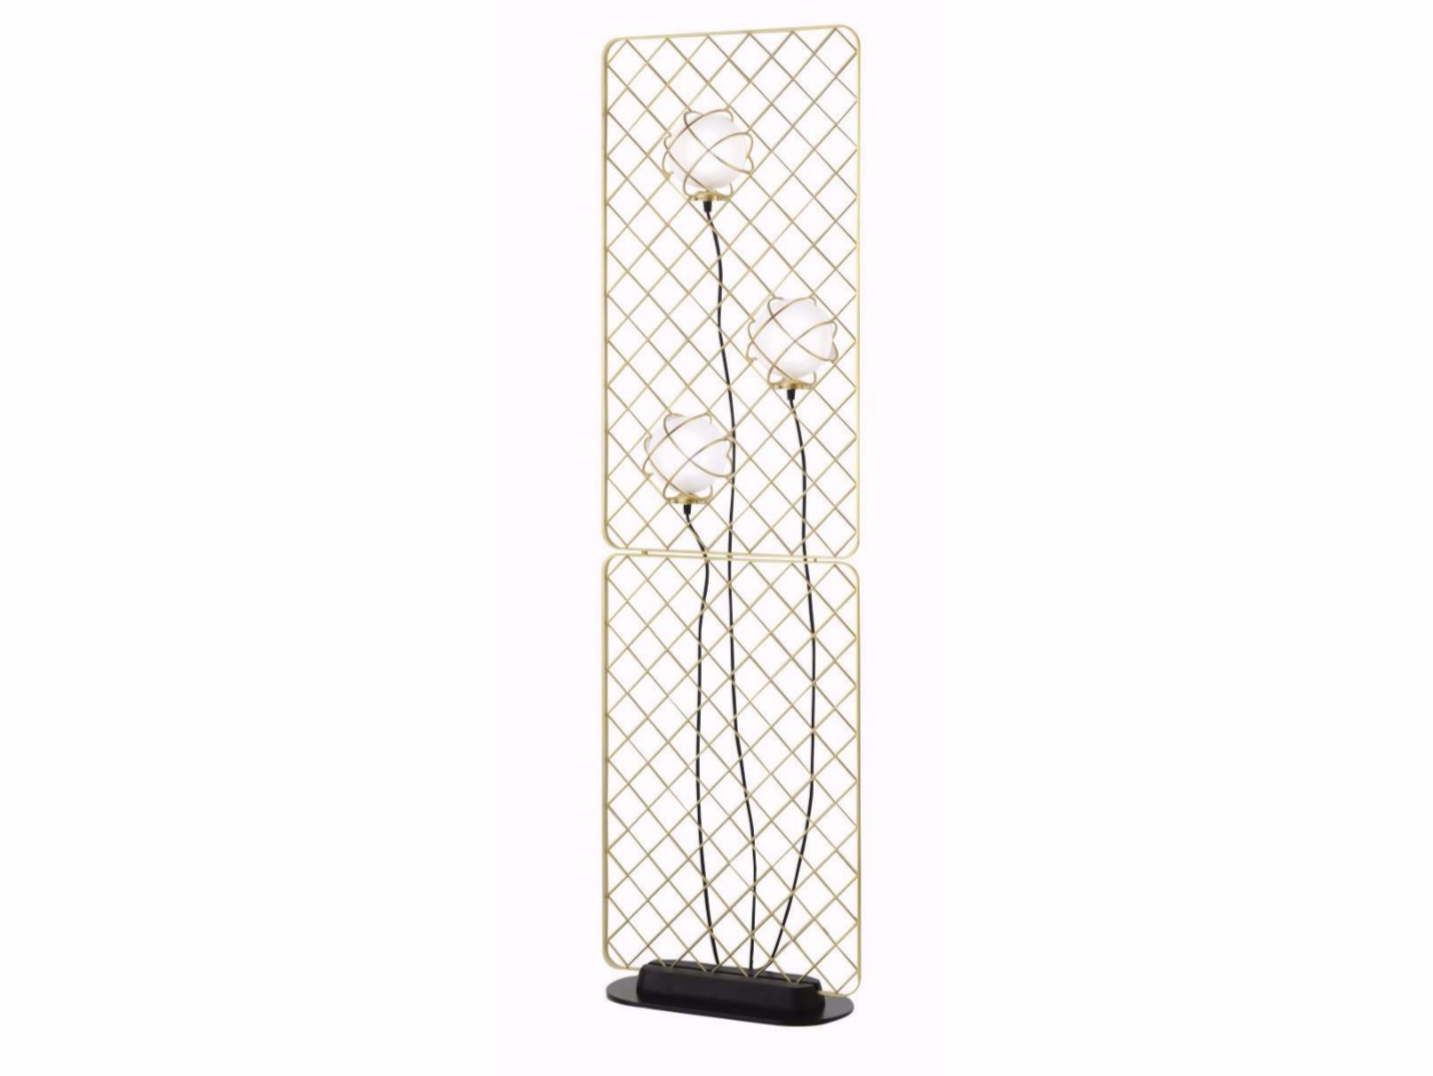 light catcher lampadaire collection light catcher by roche bobois design dan yeffet. Black Bedroom Furniture Sets. Home Design Ideas